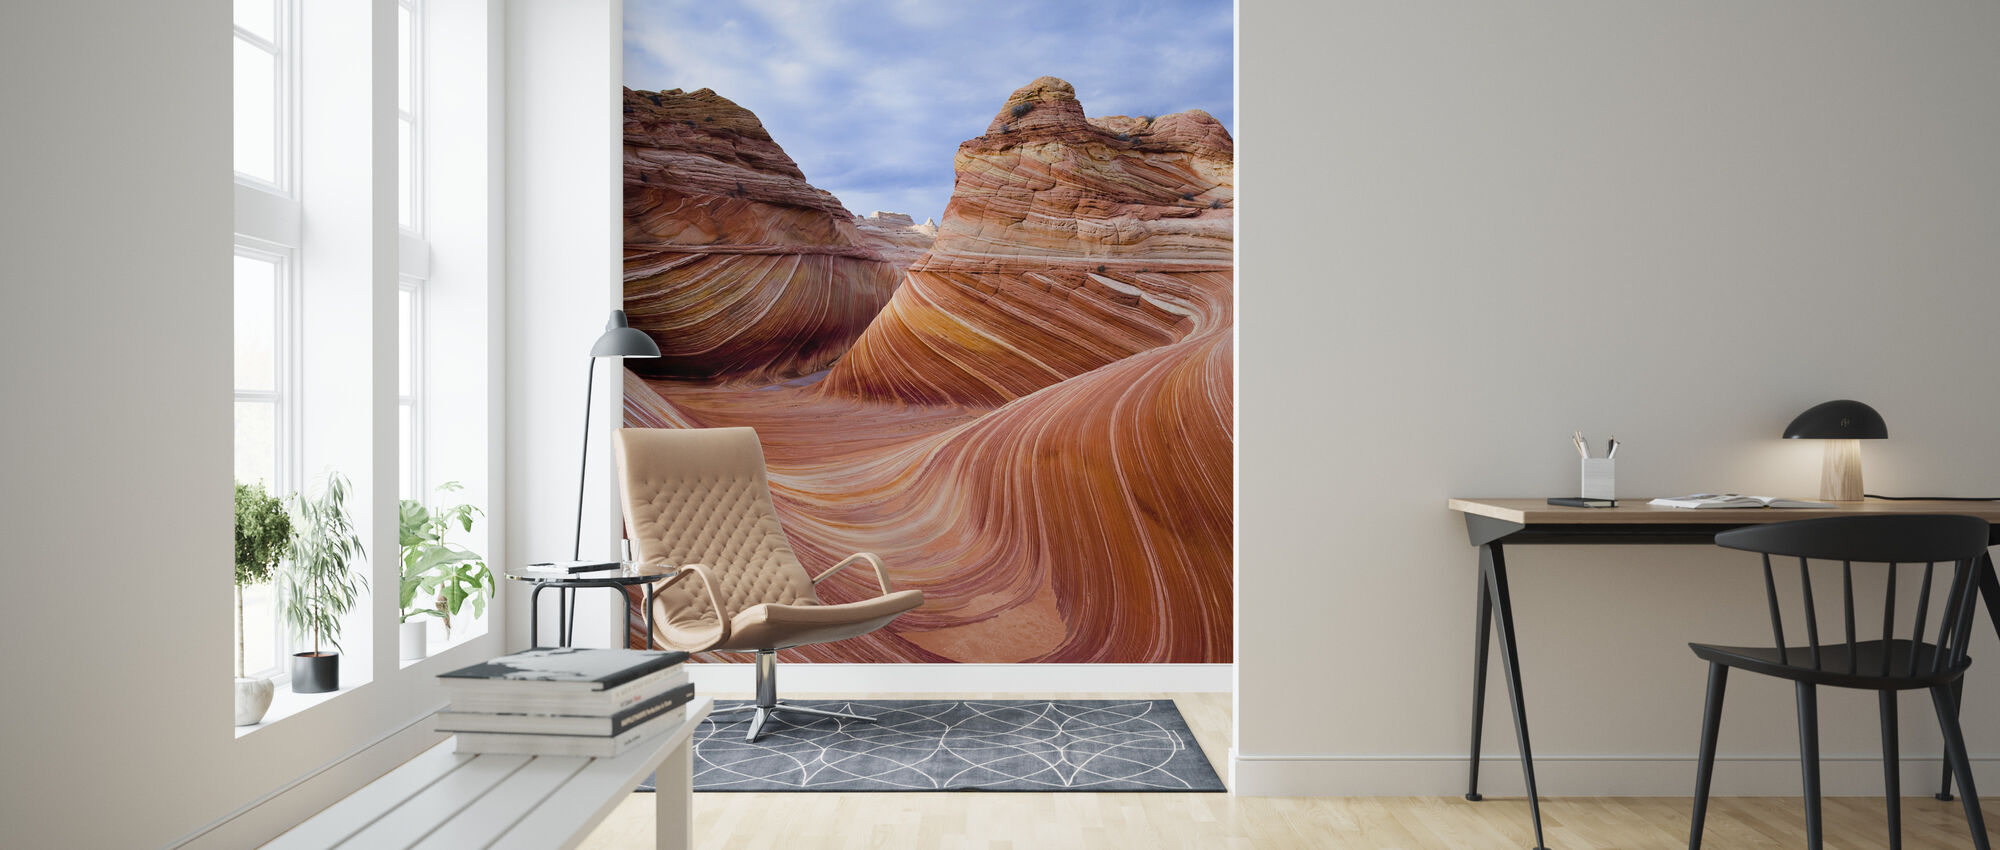 Twisted Sandstone Curves, Vermilion Cliffs, Arizona - Wallpaper - Living Room